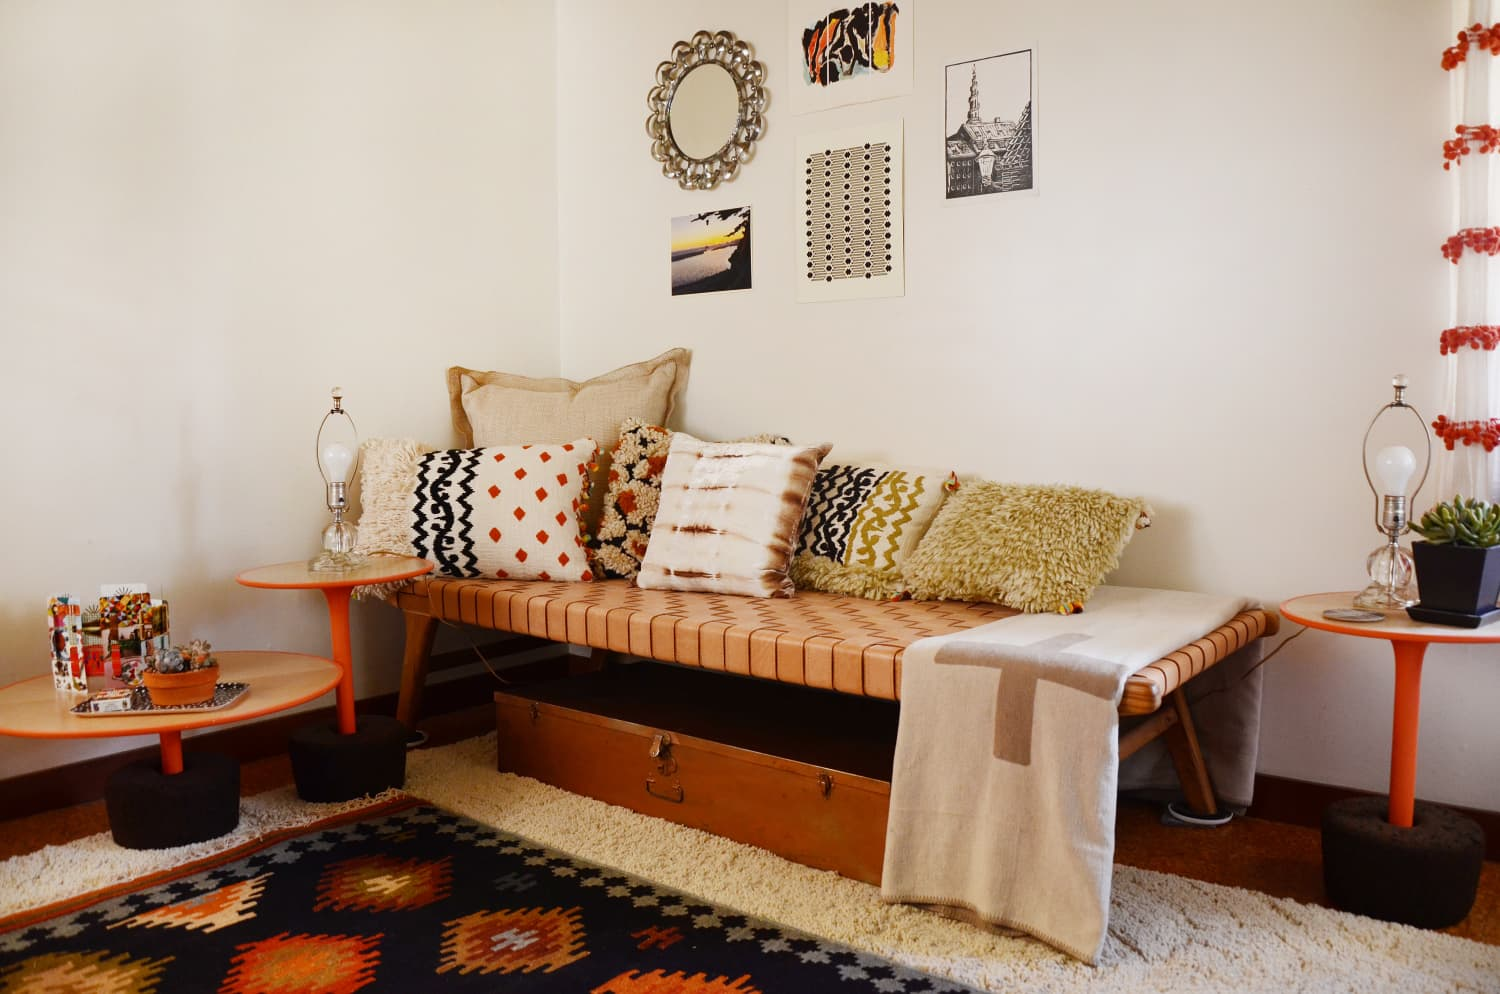 Urban Outfitters Decor Sale - Home Deals June 2019 ...